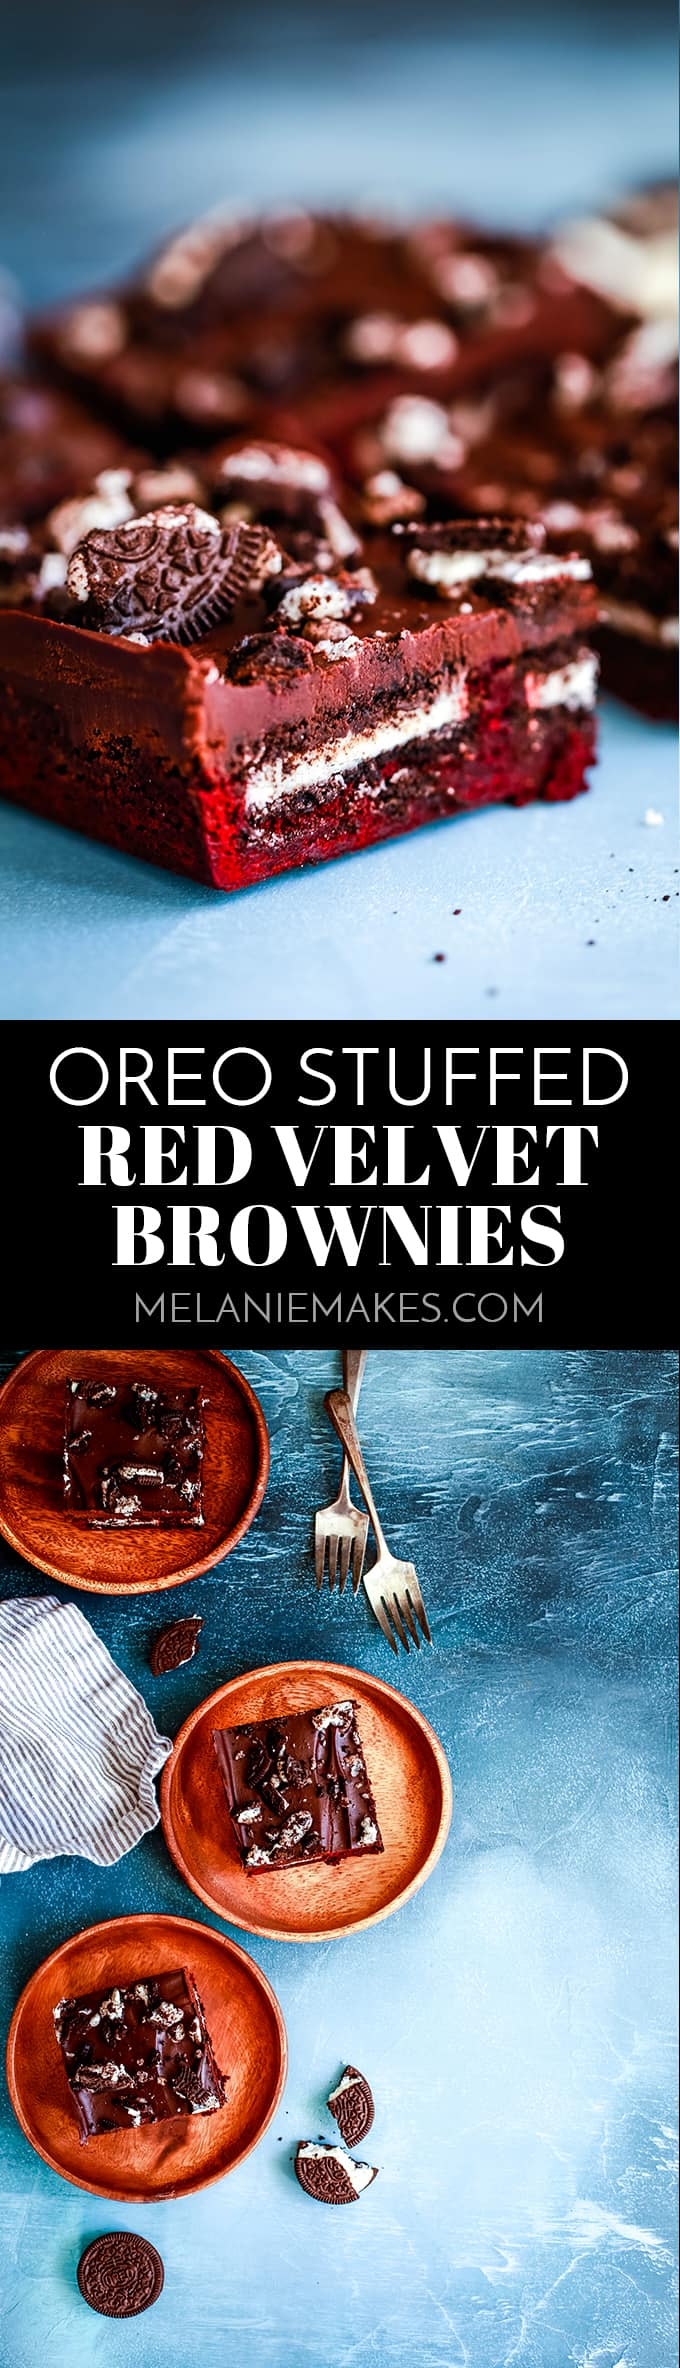 These Oreo Stuffed Red Velvet Brownies are deliciously decadent! A fudgy red velvet brownie base is stuffed with Oreos and then covered with a layer of chocolate ganache and more crumbled cookies. #redvelvet #brownies #chocolate #oreo #cookies #ganache #valentines #christmas